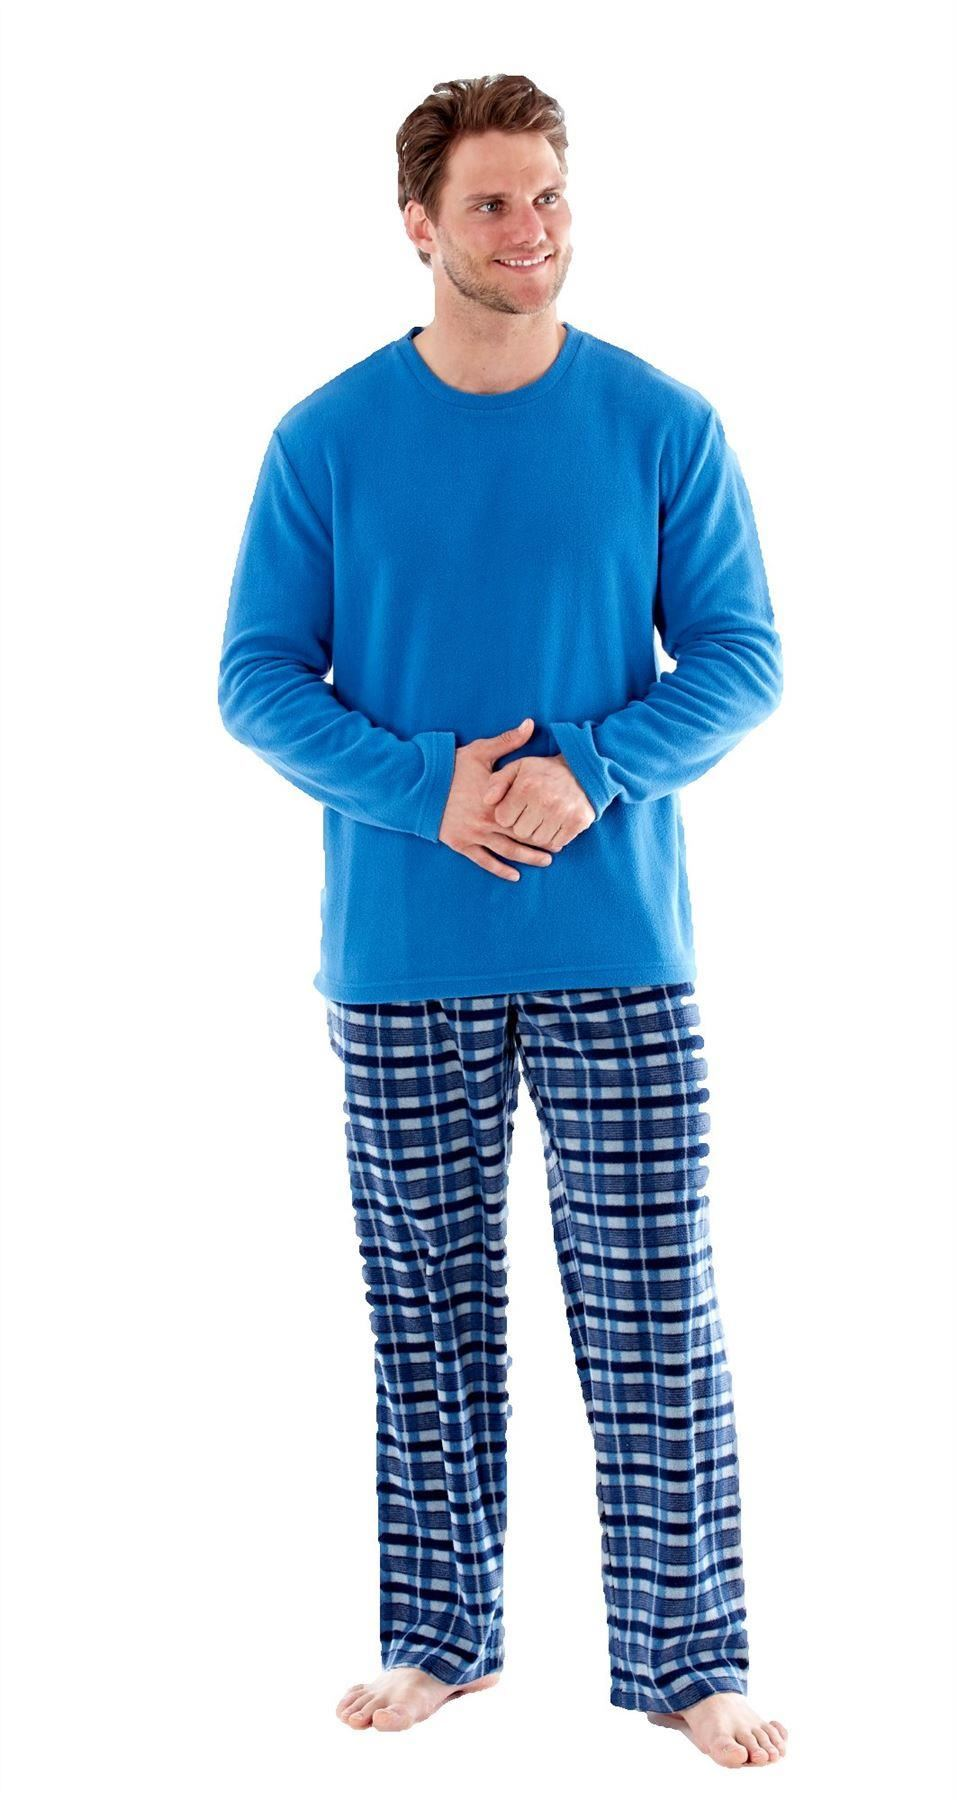 Shop online for Men's Pajamas: Lounge & Sleepwear at 0549sahibi.tk Find robes, pajamas & loungewear. Free Shipping. Free Returns. All the time. Skip navigation. Give the card that gives! We donate 1% of all Gift Card sales to local nonprofits. Shop Gift Cards. Designer.